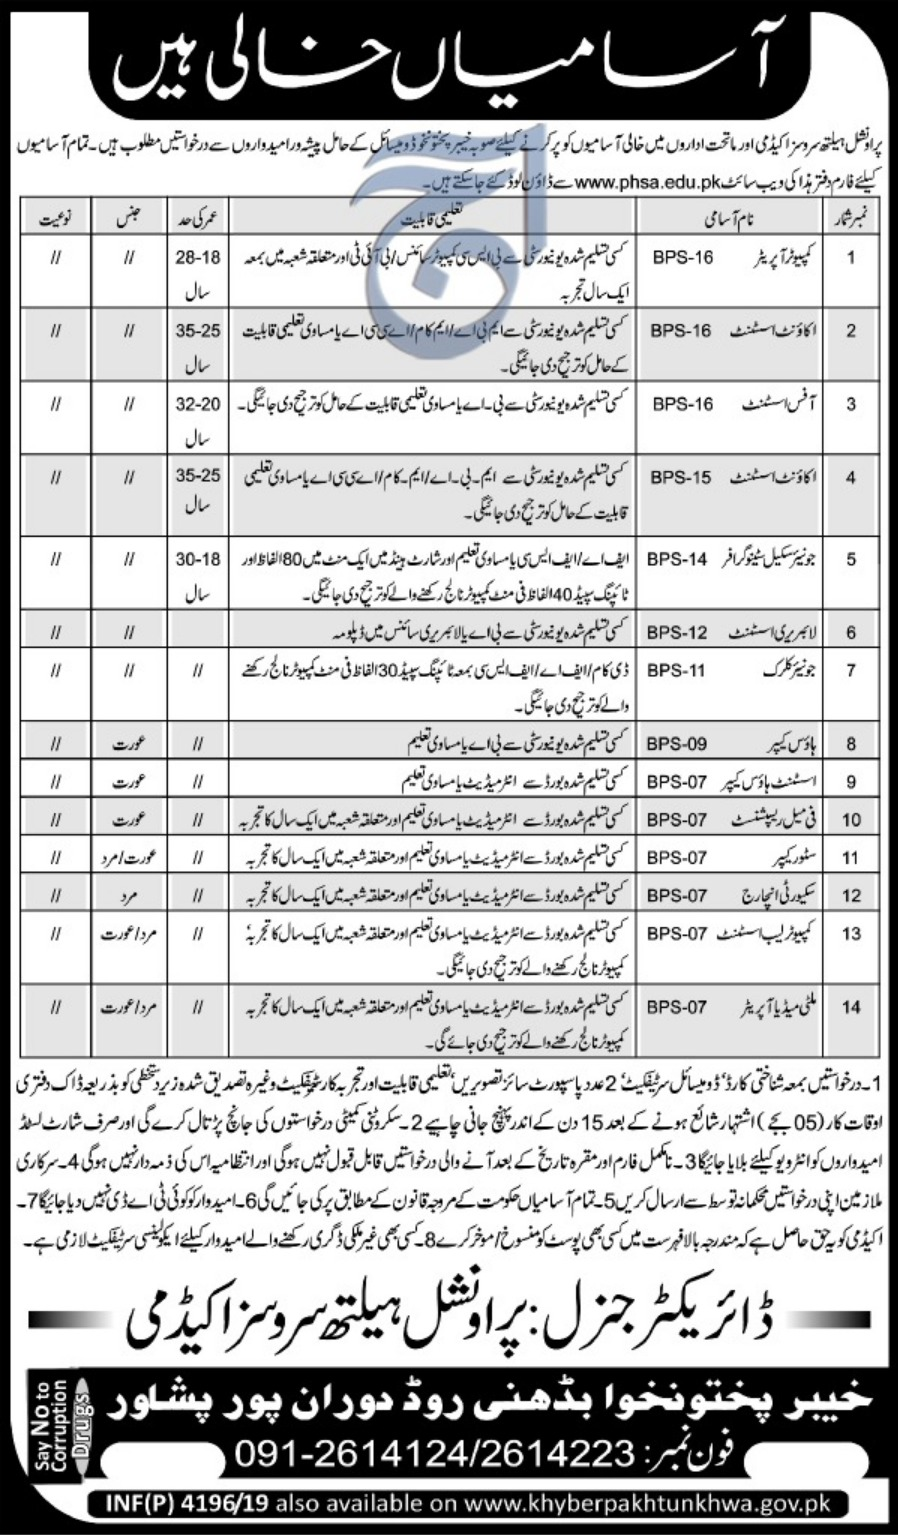 Provincial Health Services Academy Jobs October 2019,Provincial Health Services Academy Jobs KPK October 2019,health services academy admissions 2019 health services academy contact health services academy admissions 2018 health services academy islamabad fee structure state health services academy mirpur www phsa edu pk 2019 phsa admission 2019 www.phsa.edu.pk application form 2019 www.phsa.edu.pk merit list 2018 www.phsa.edu.pk jobs phsa jobs 2019 provincial health services academy jobs 2019 phsa nursing admission 2019 phsa peshawar www.phsa.edu.pk 2018 www.phsa.edu.pk jobs 2019 phsa peshawar merit list 2018 phsa prospectus phsa peshawar contact number nts